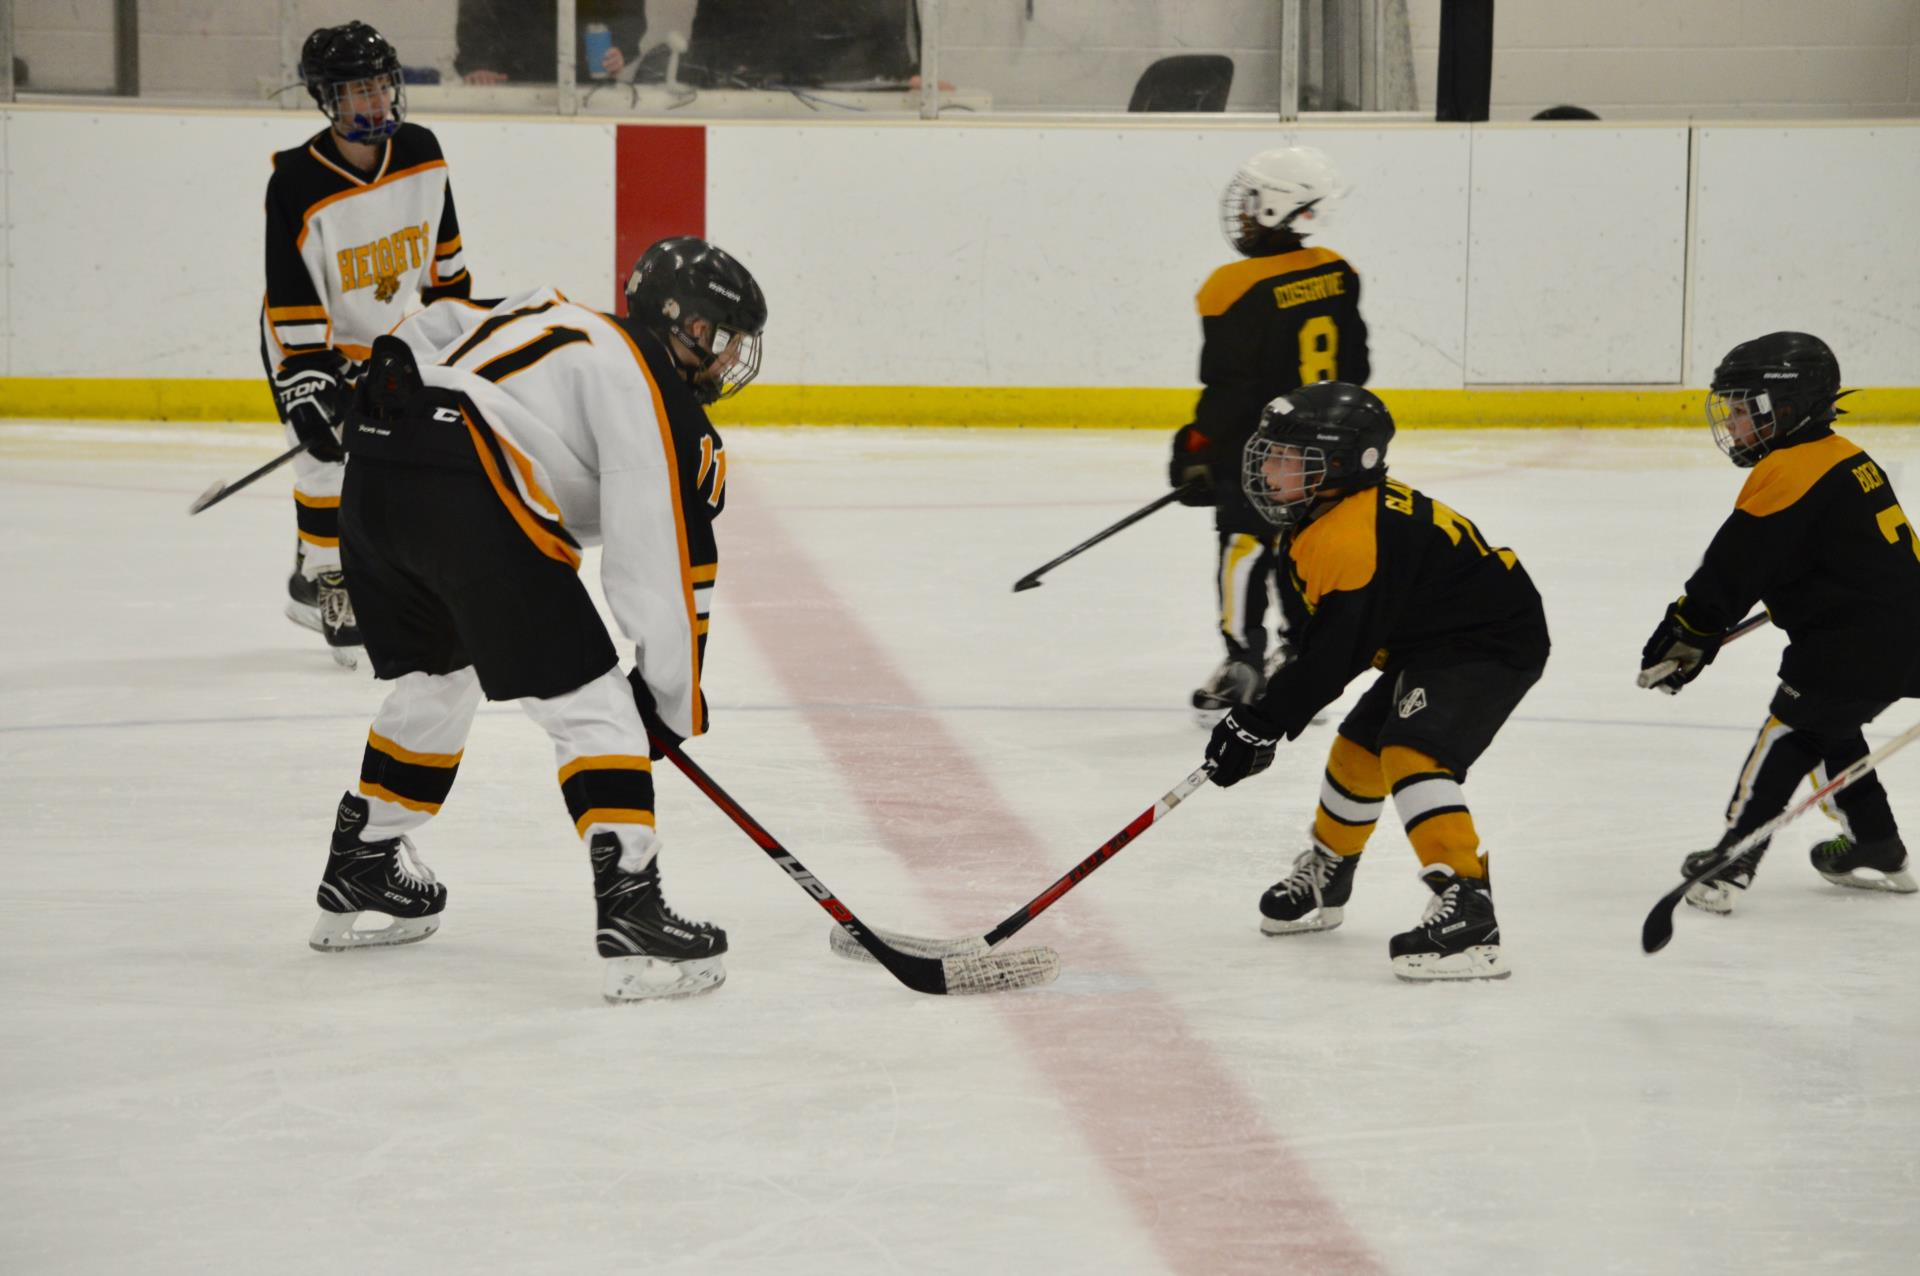 Heights and Mites players on ice